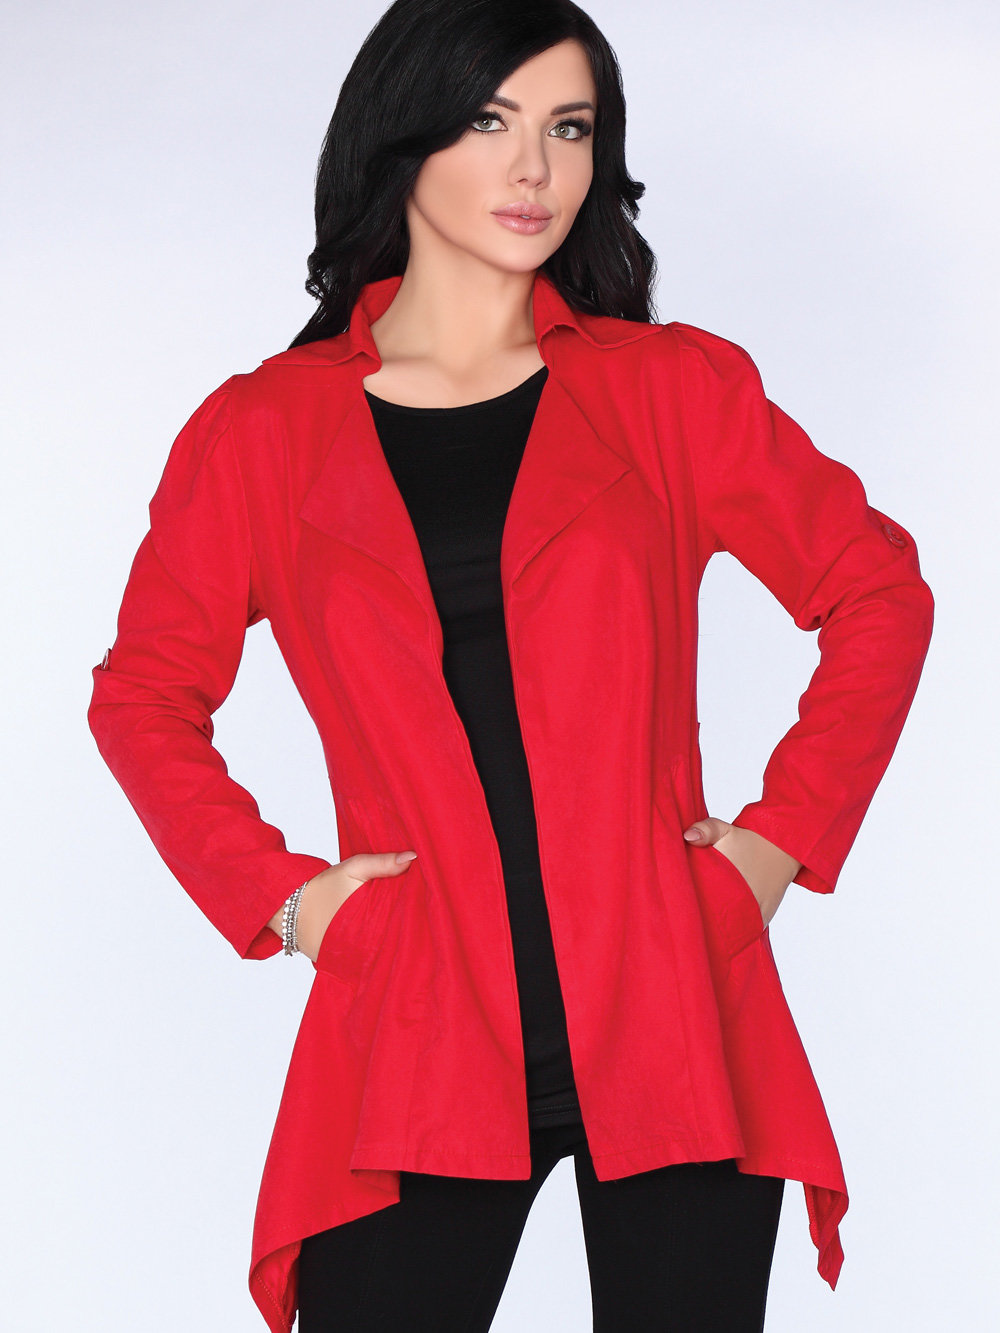 Cardigan CG026 Red Rosu de la Merribel